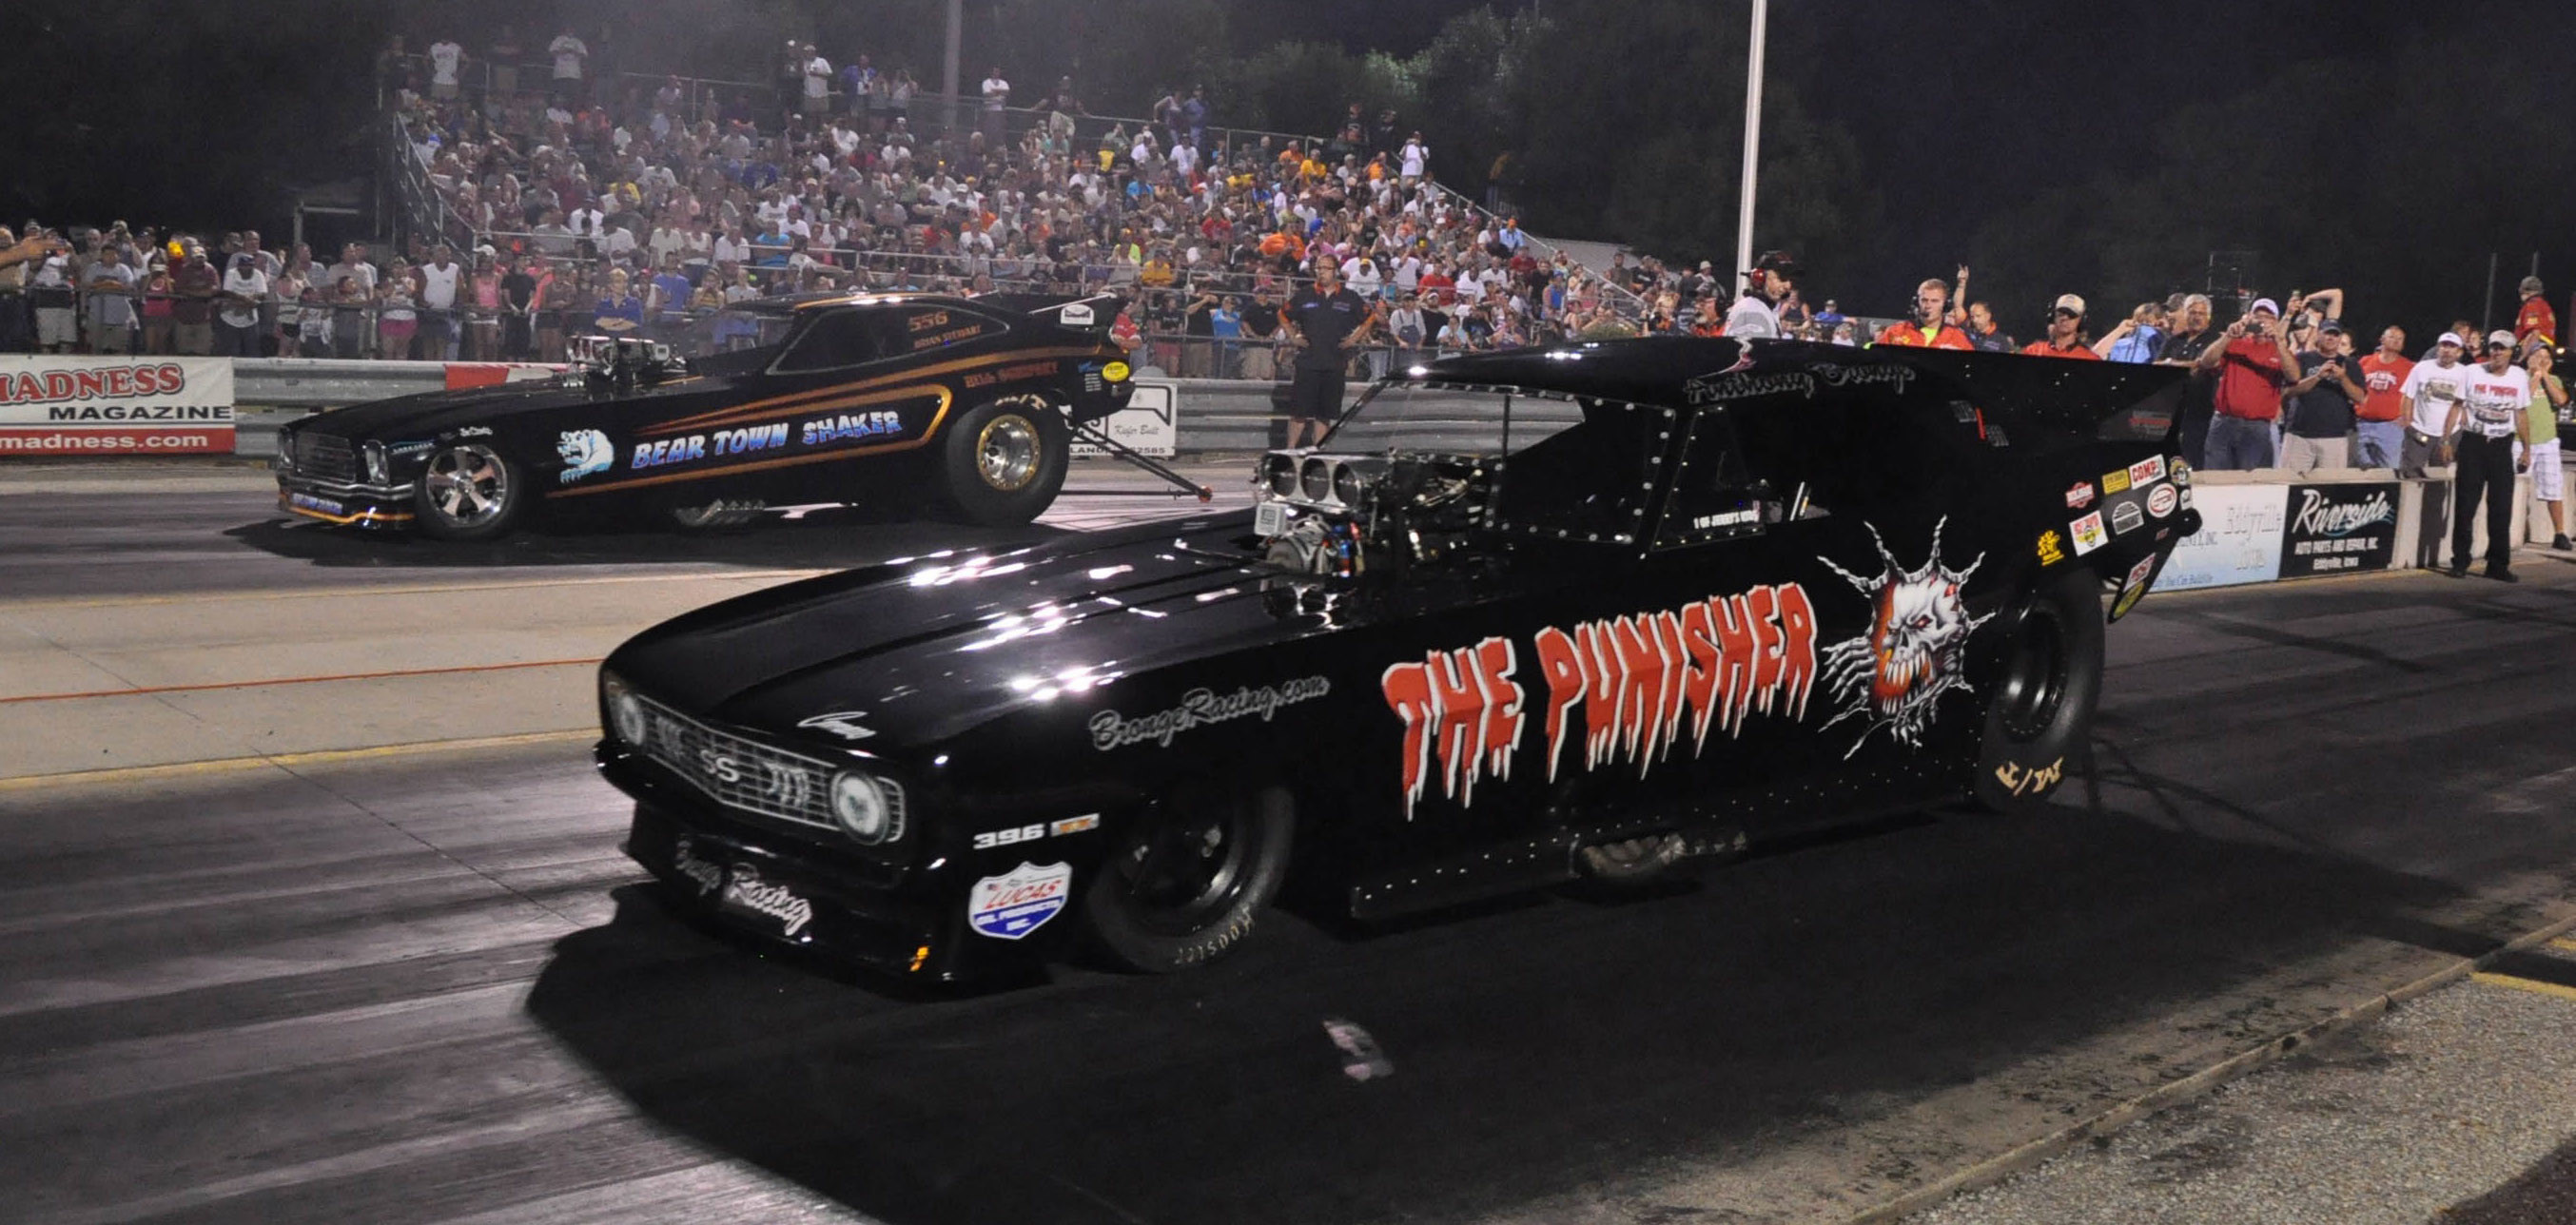 Res: 2708x1288, NHRA drag racing race hot rod funny-car funny AA FC ford mustang .